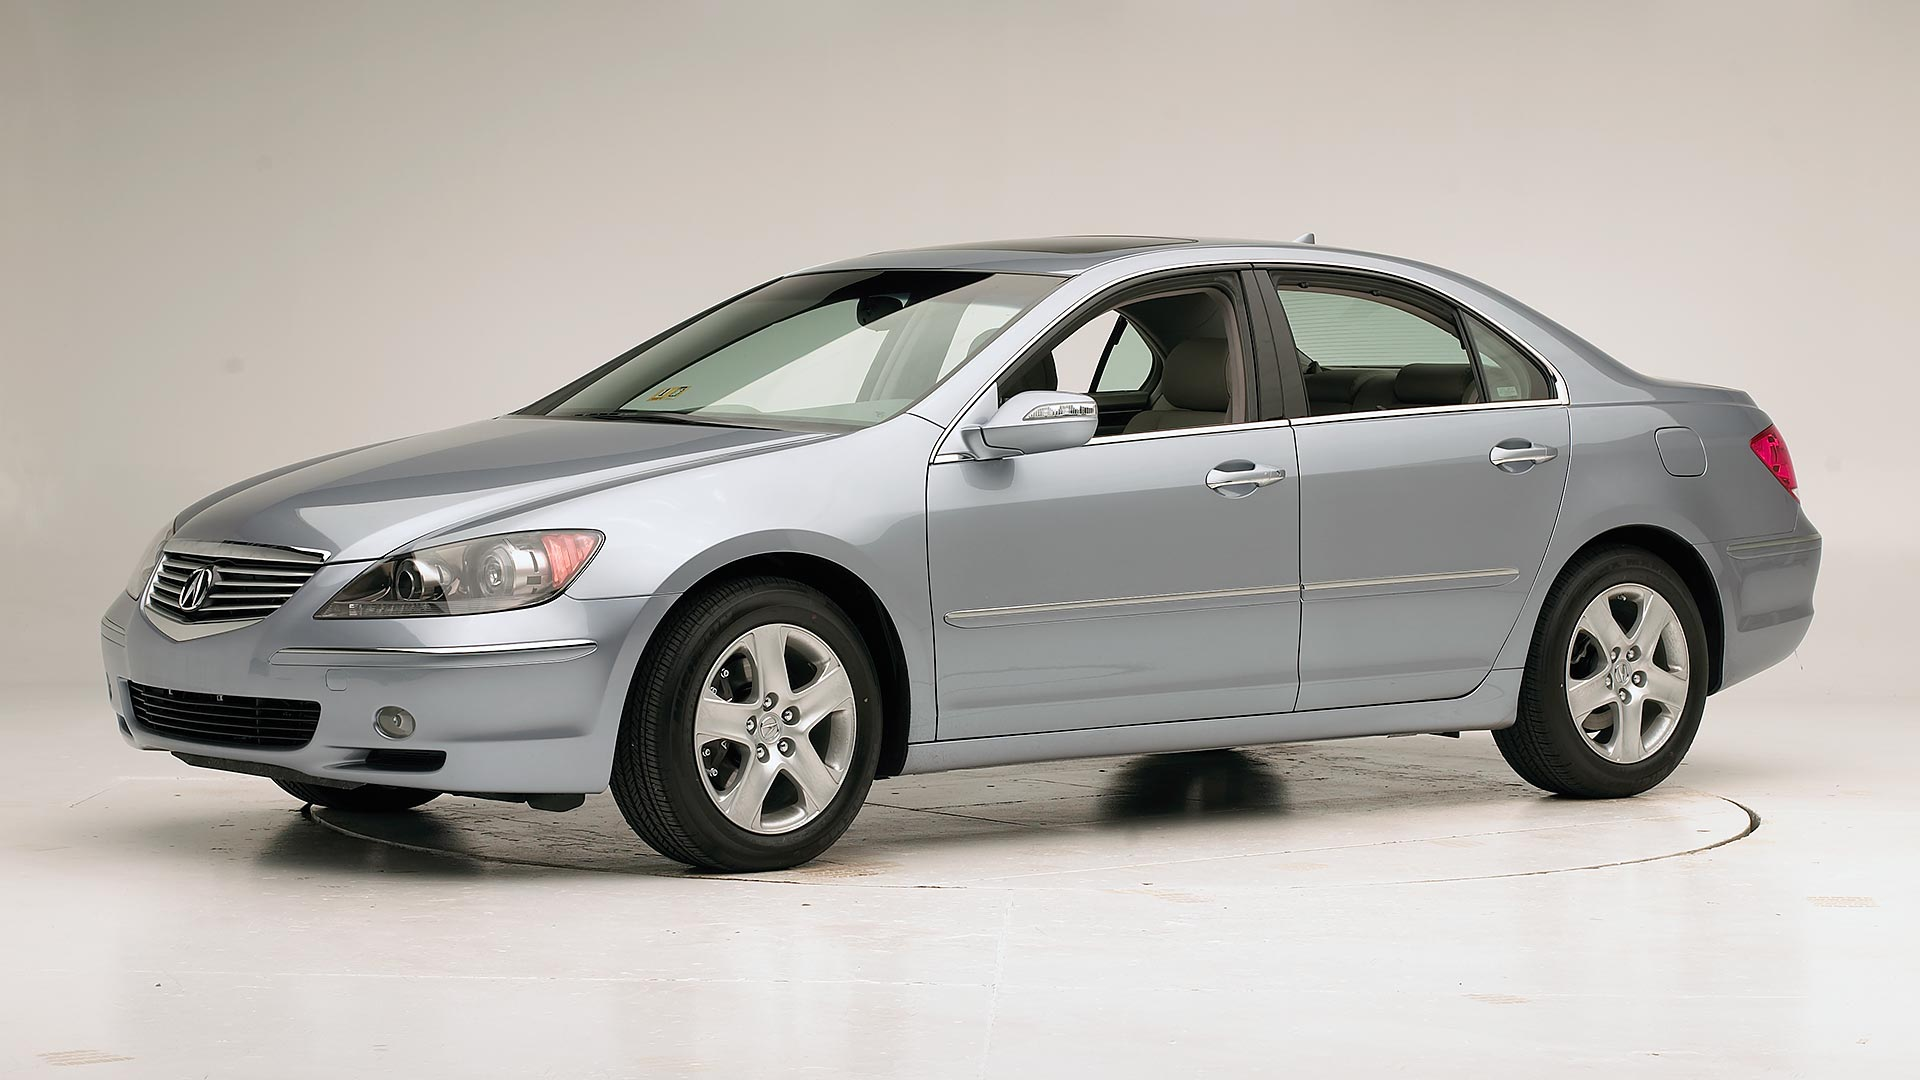 2005 Acura RL 4-door sedan